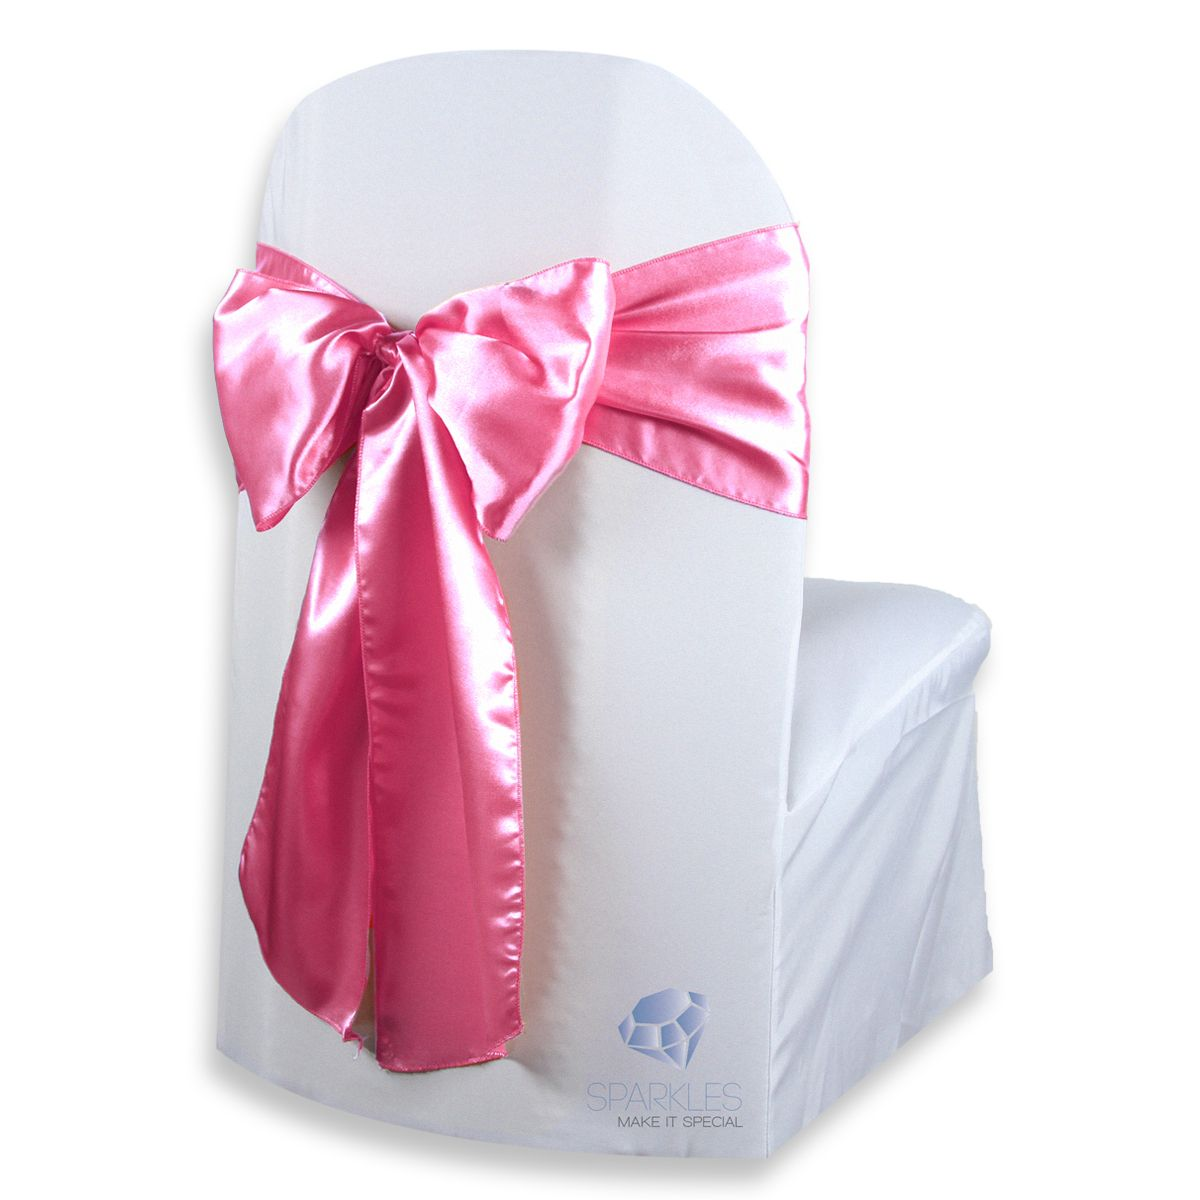 100 pieces hot pink organza chair bow sashes